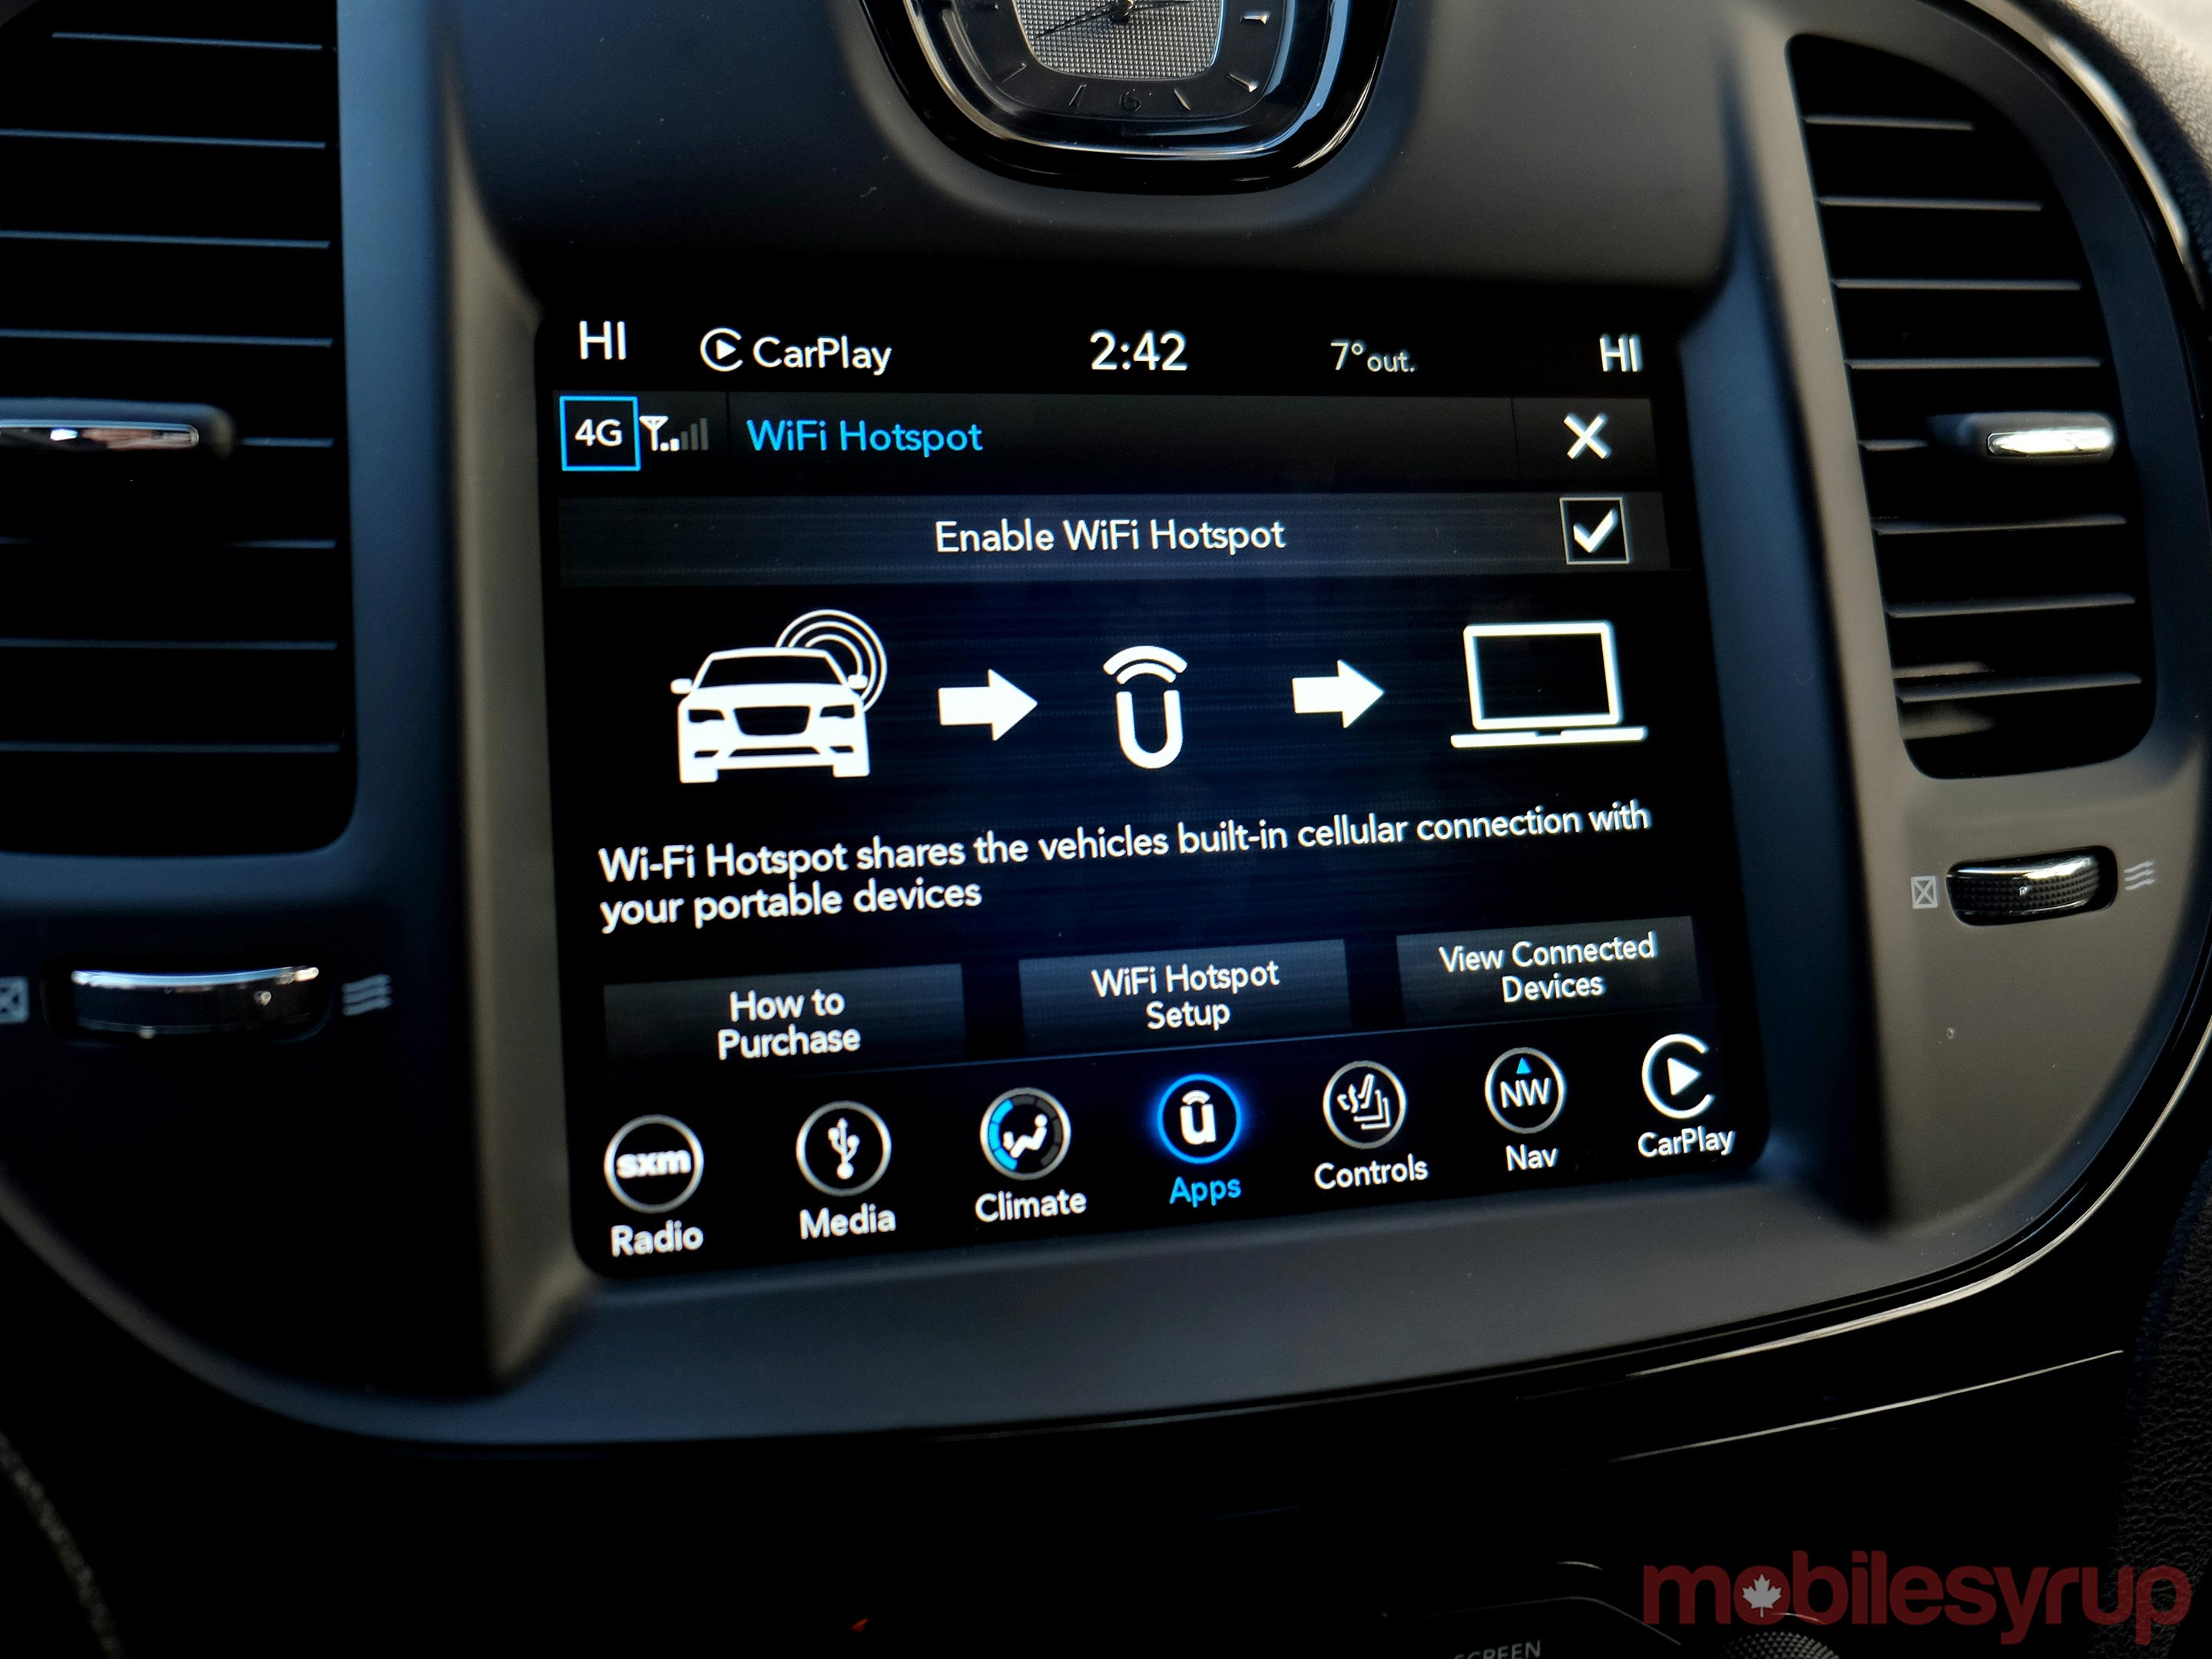 2018 Chrysler Uconnect Review: Back and forth | MobileSyrup